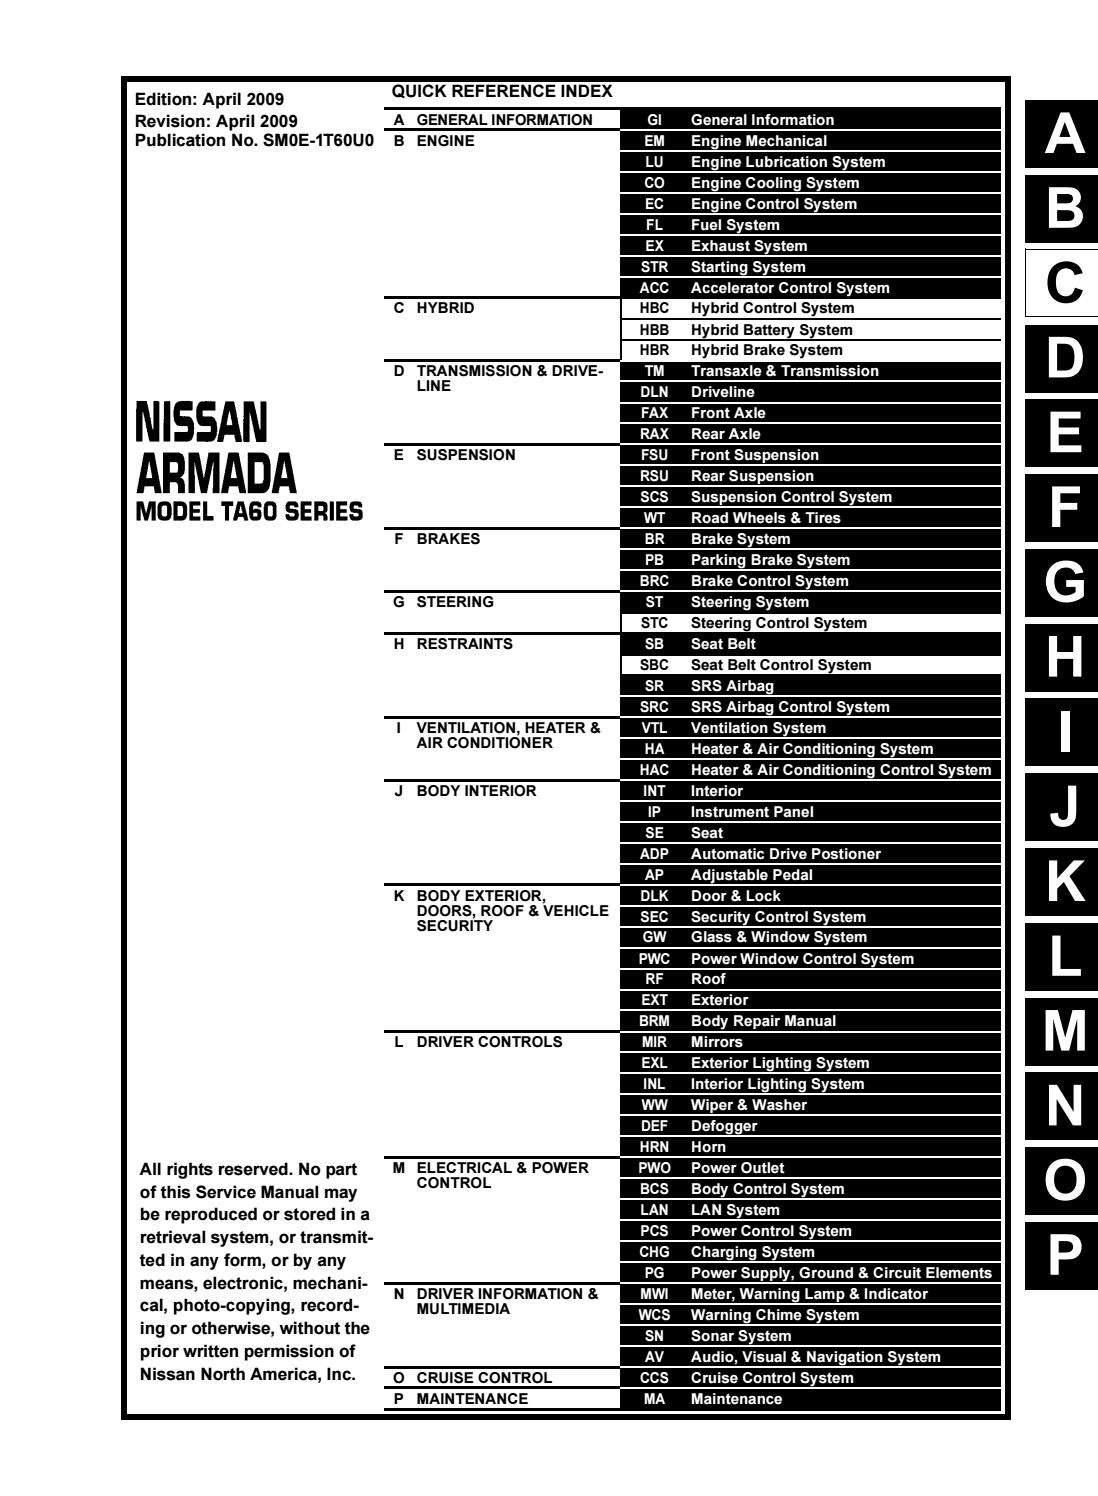 2010 NISSAN ARMADA Service Repair Manual by 163215 - issuu on